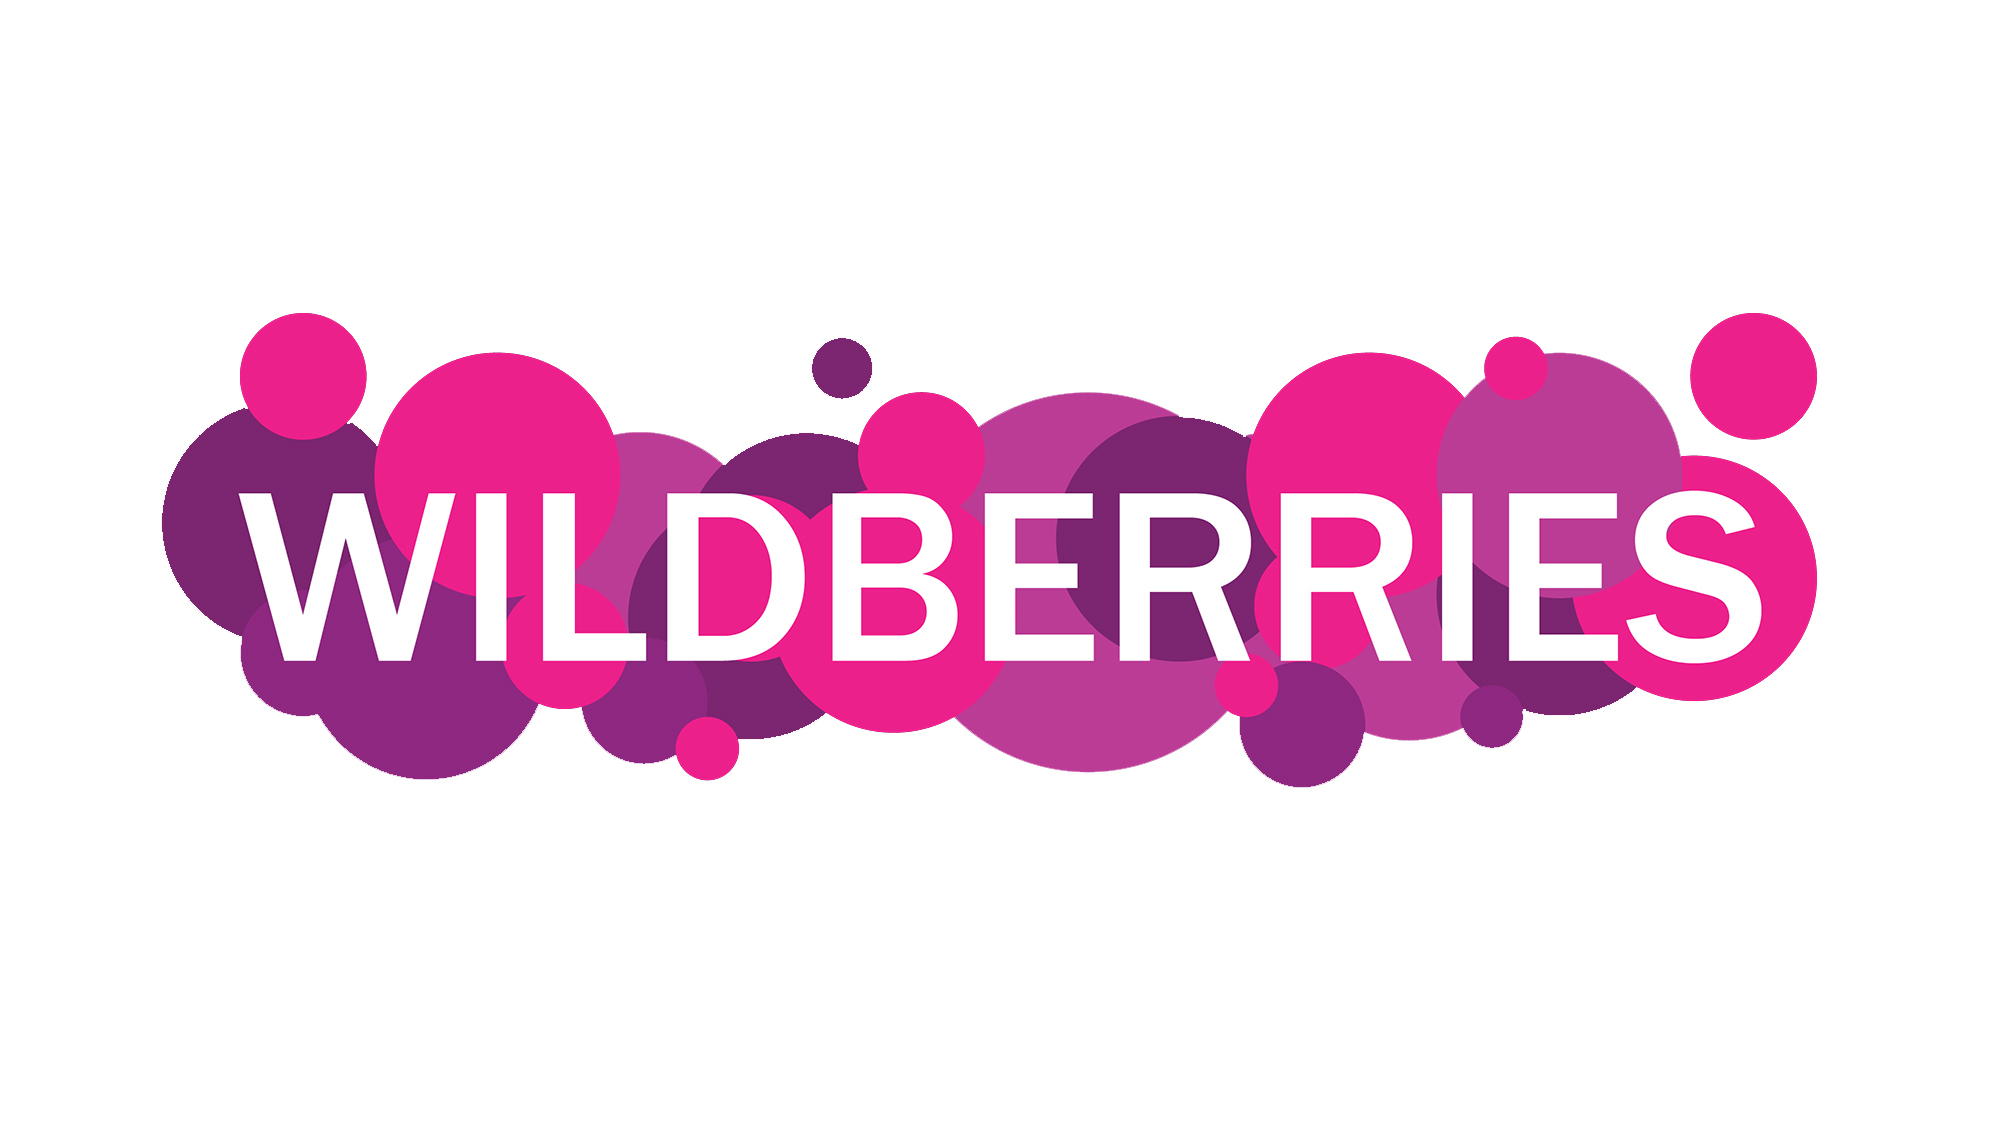 Wildberries планирует нанять 200 IT-специалистов